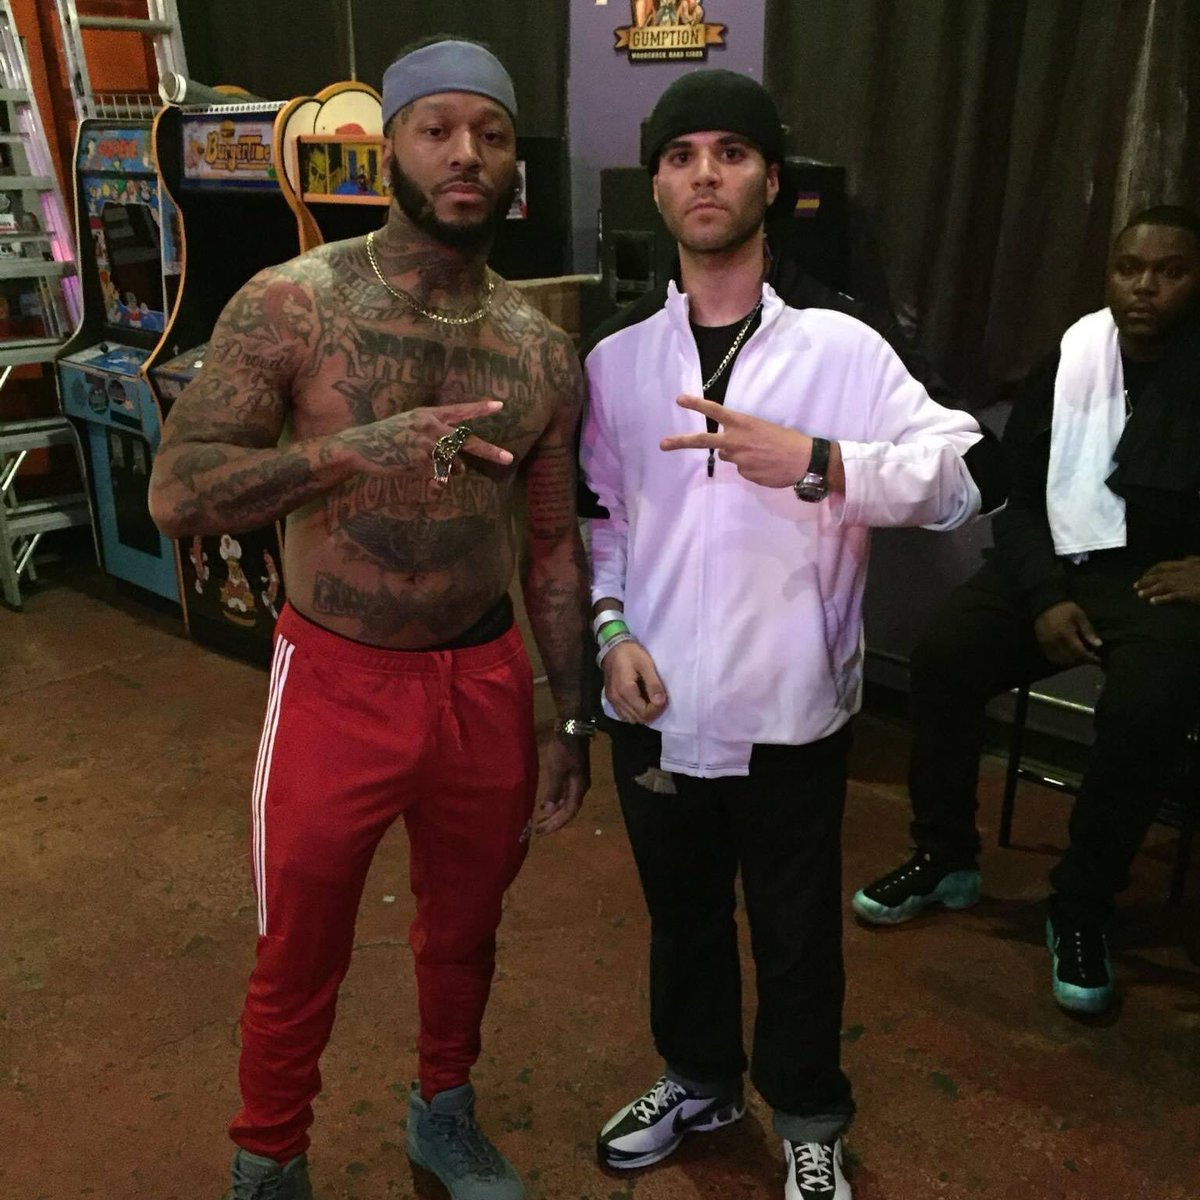 #ThrowbackThursday met @MONTANAof300 a couple of years ago in STL after his performance!! He's hands down one of the most lyrically insane rappers out there who never stops!! It'll make my day if he follows me!! Can't wait for the #RapGod album on May 20th!!